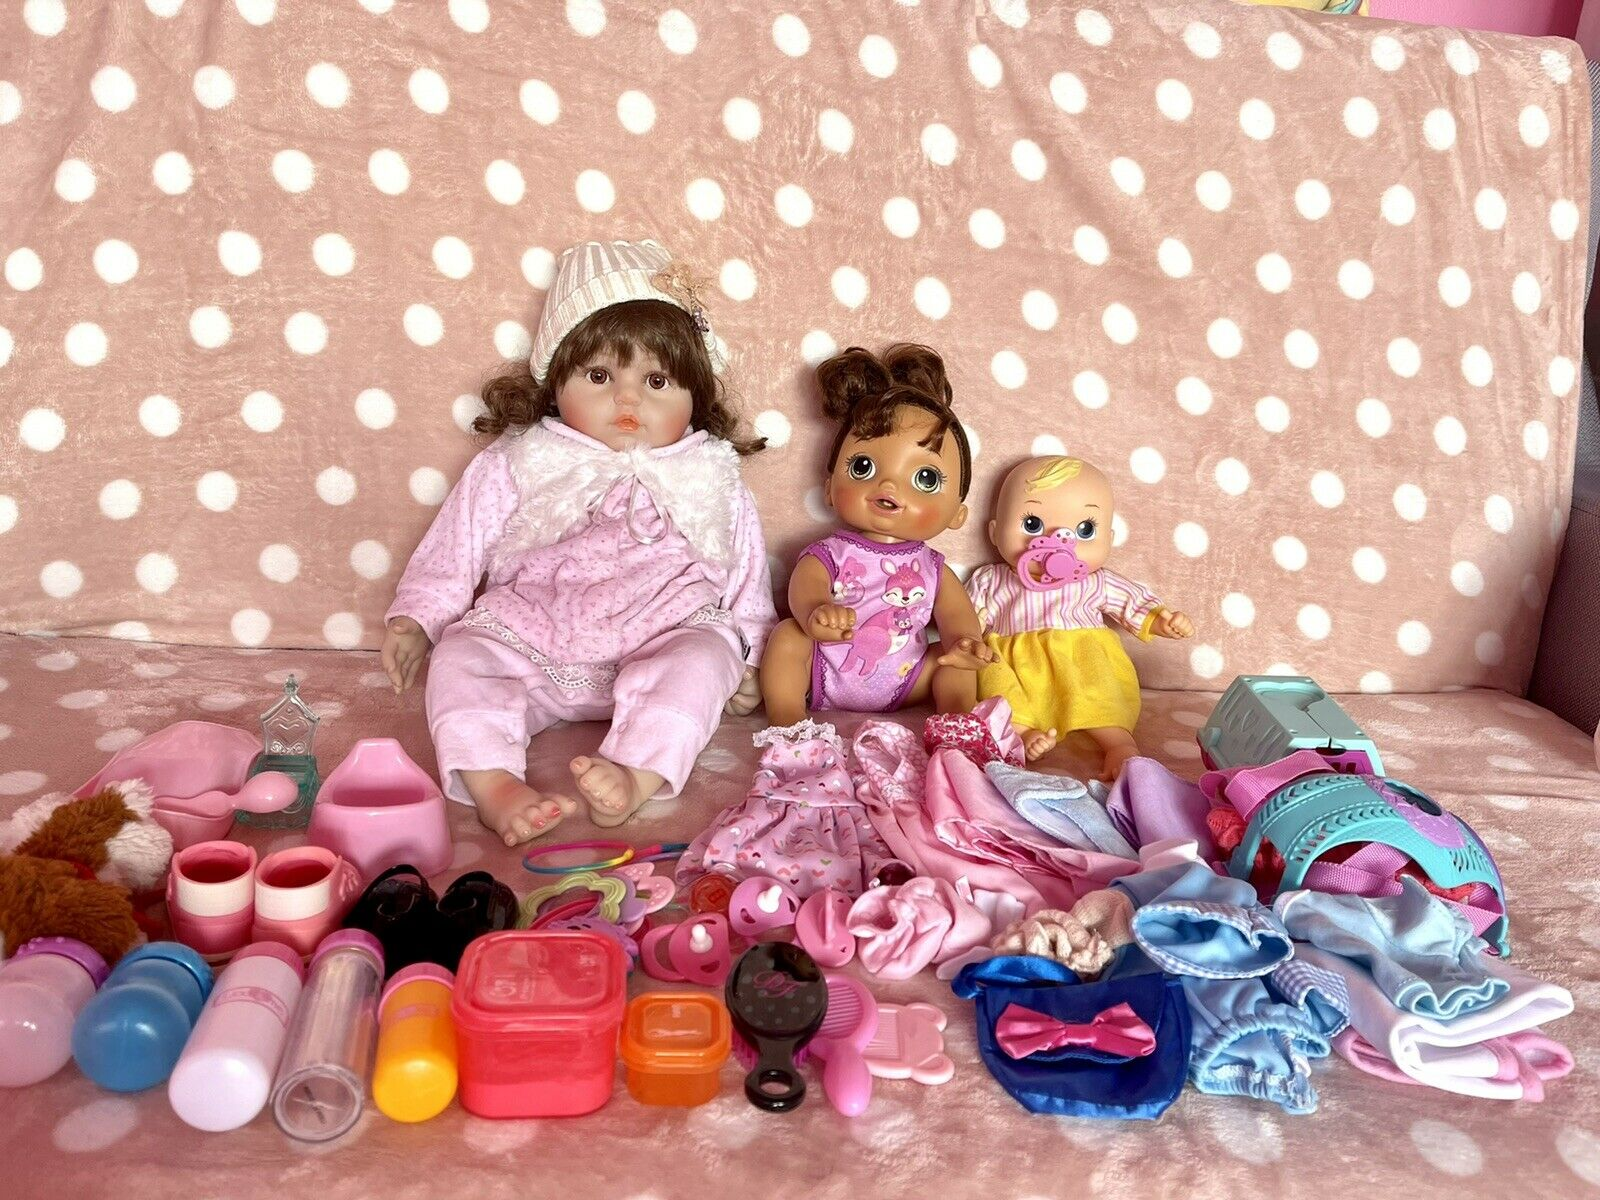 reborn toddler DollBaby Allie used Look New With Accessories All Good Condition